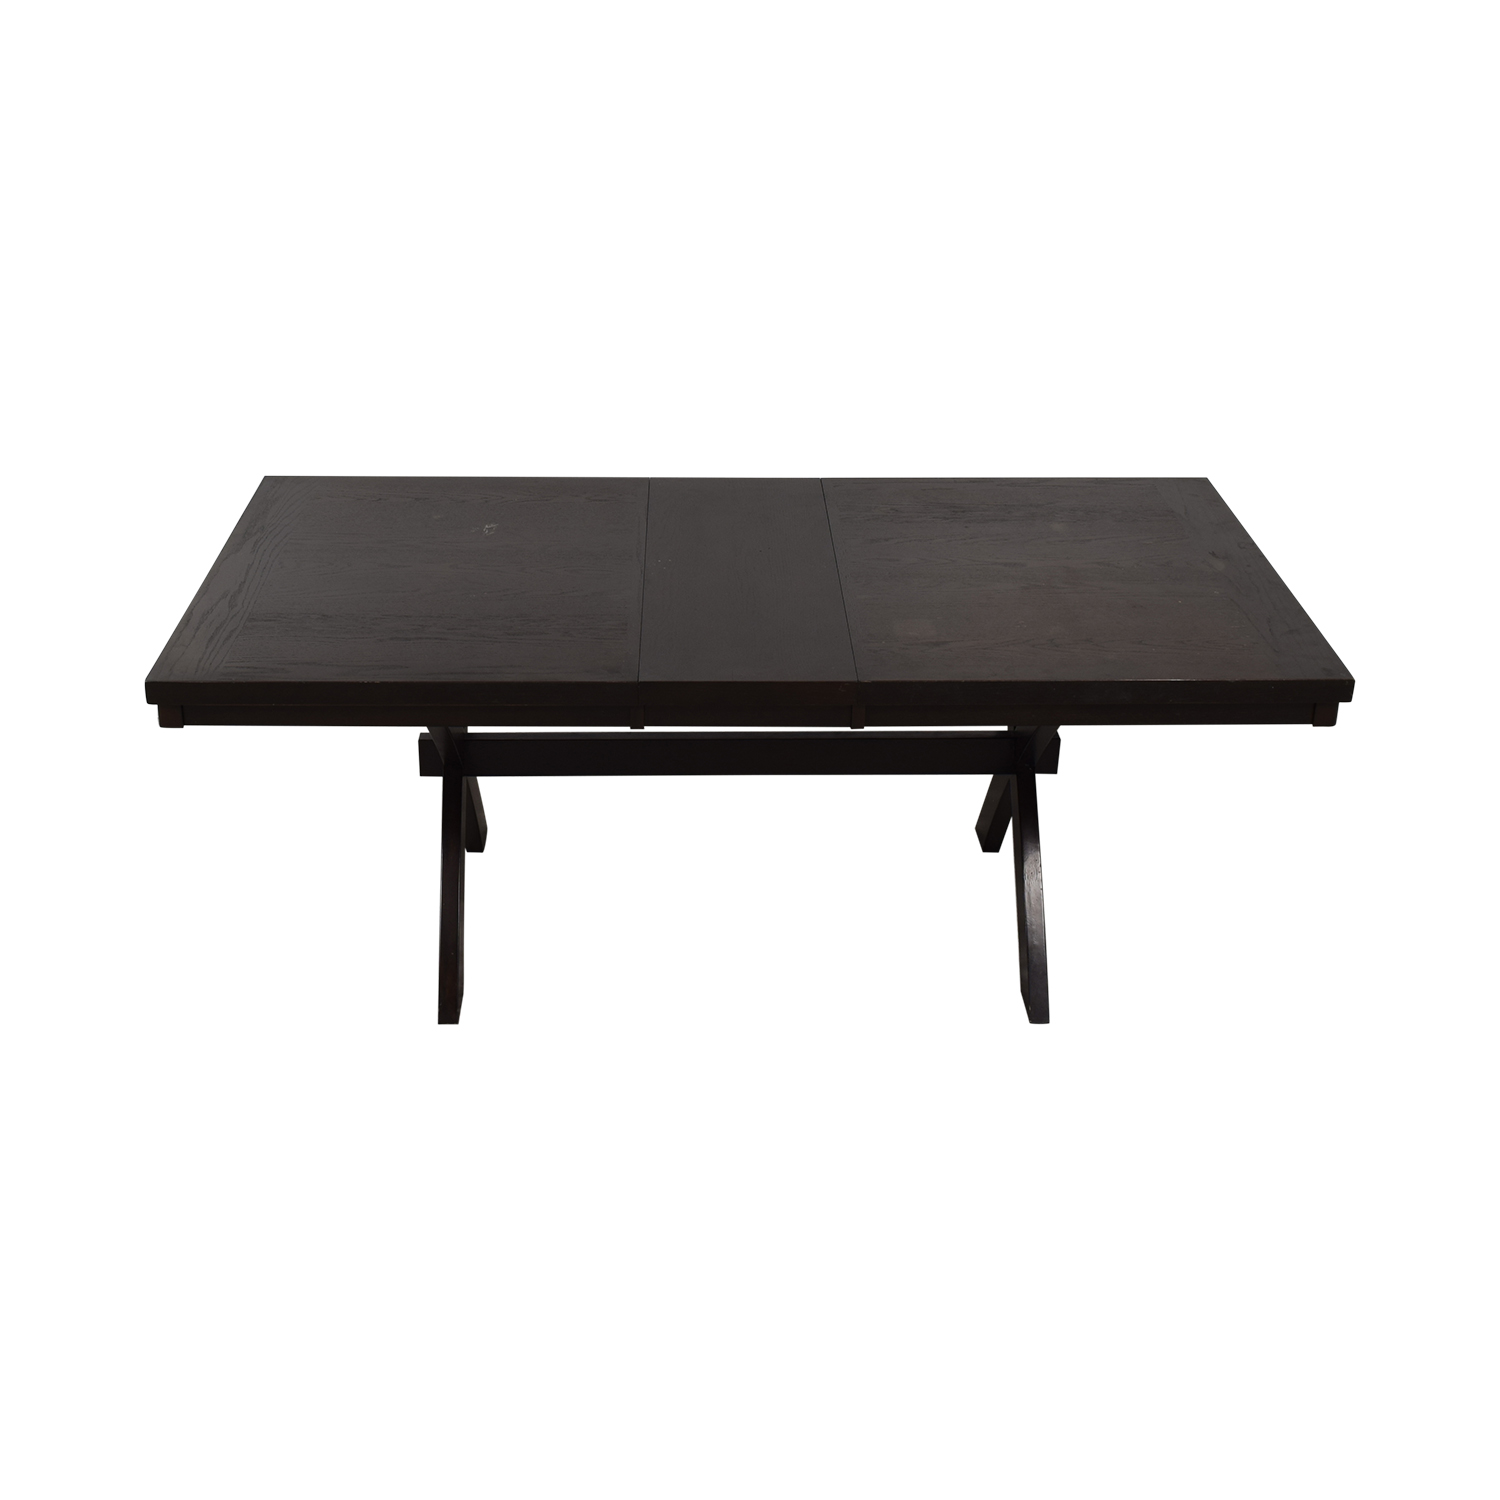 Raymour & Flanigan Raymour & Flanigan Expandable Dining Table Dinner Tables